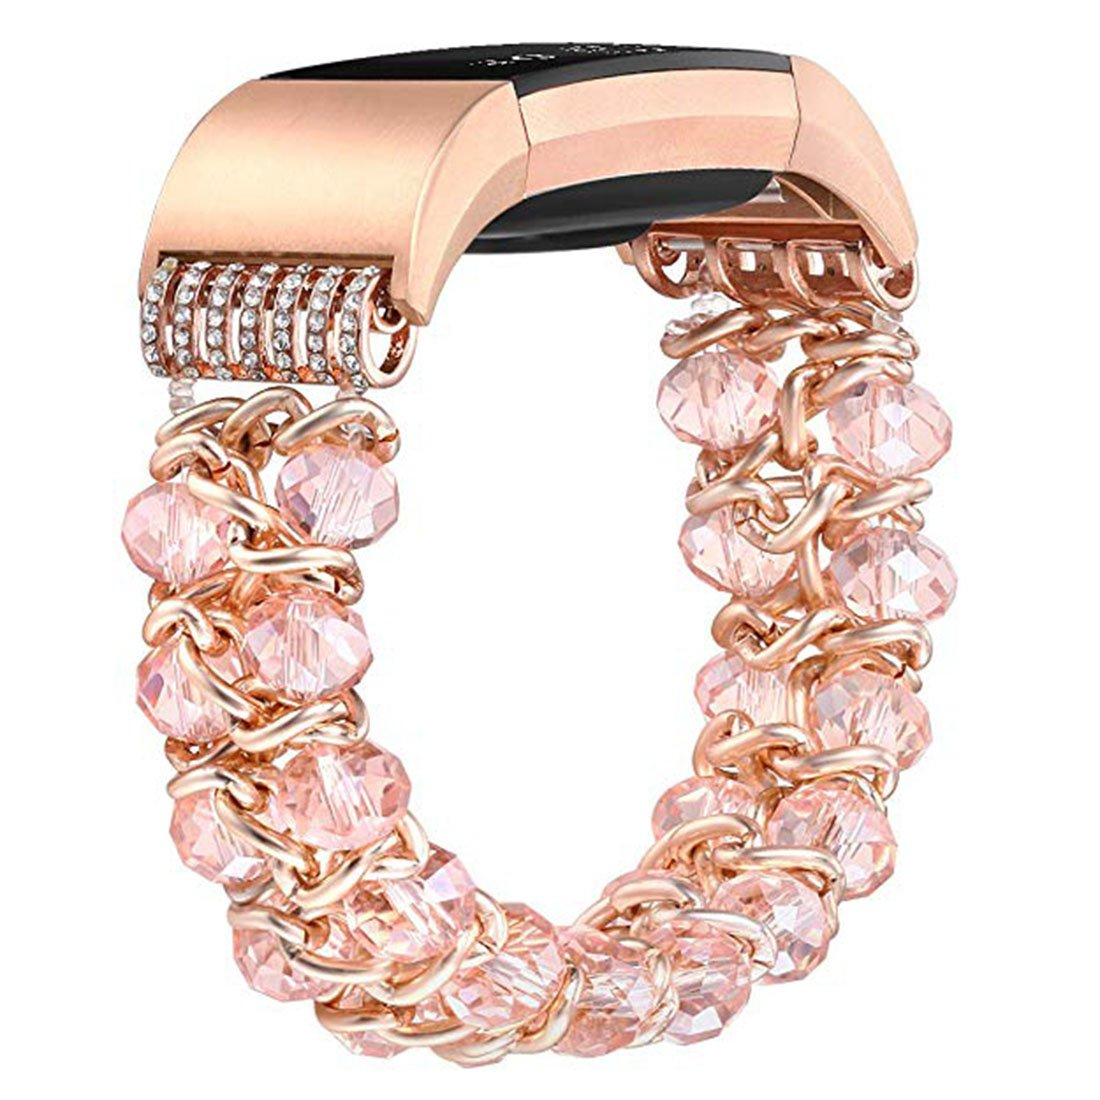 Watch Band for Fitbit Charge 2,Jewelry Bracelet with Crystal Beads Replacement Wristband for Smart Watch (Rose Gold Color Plated)